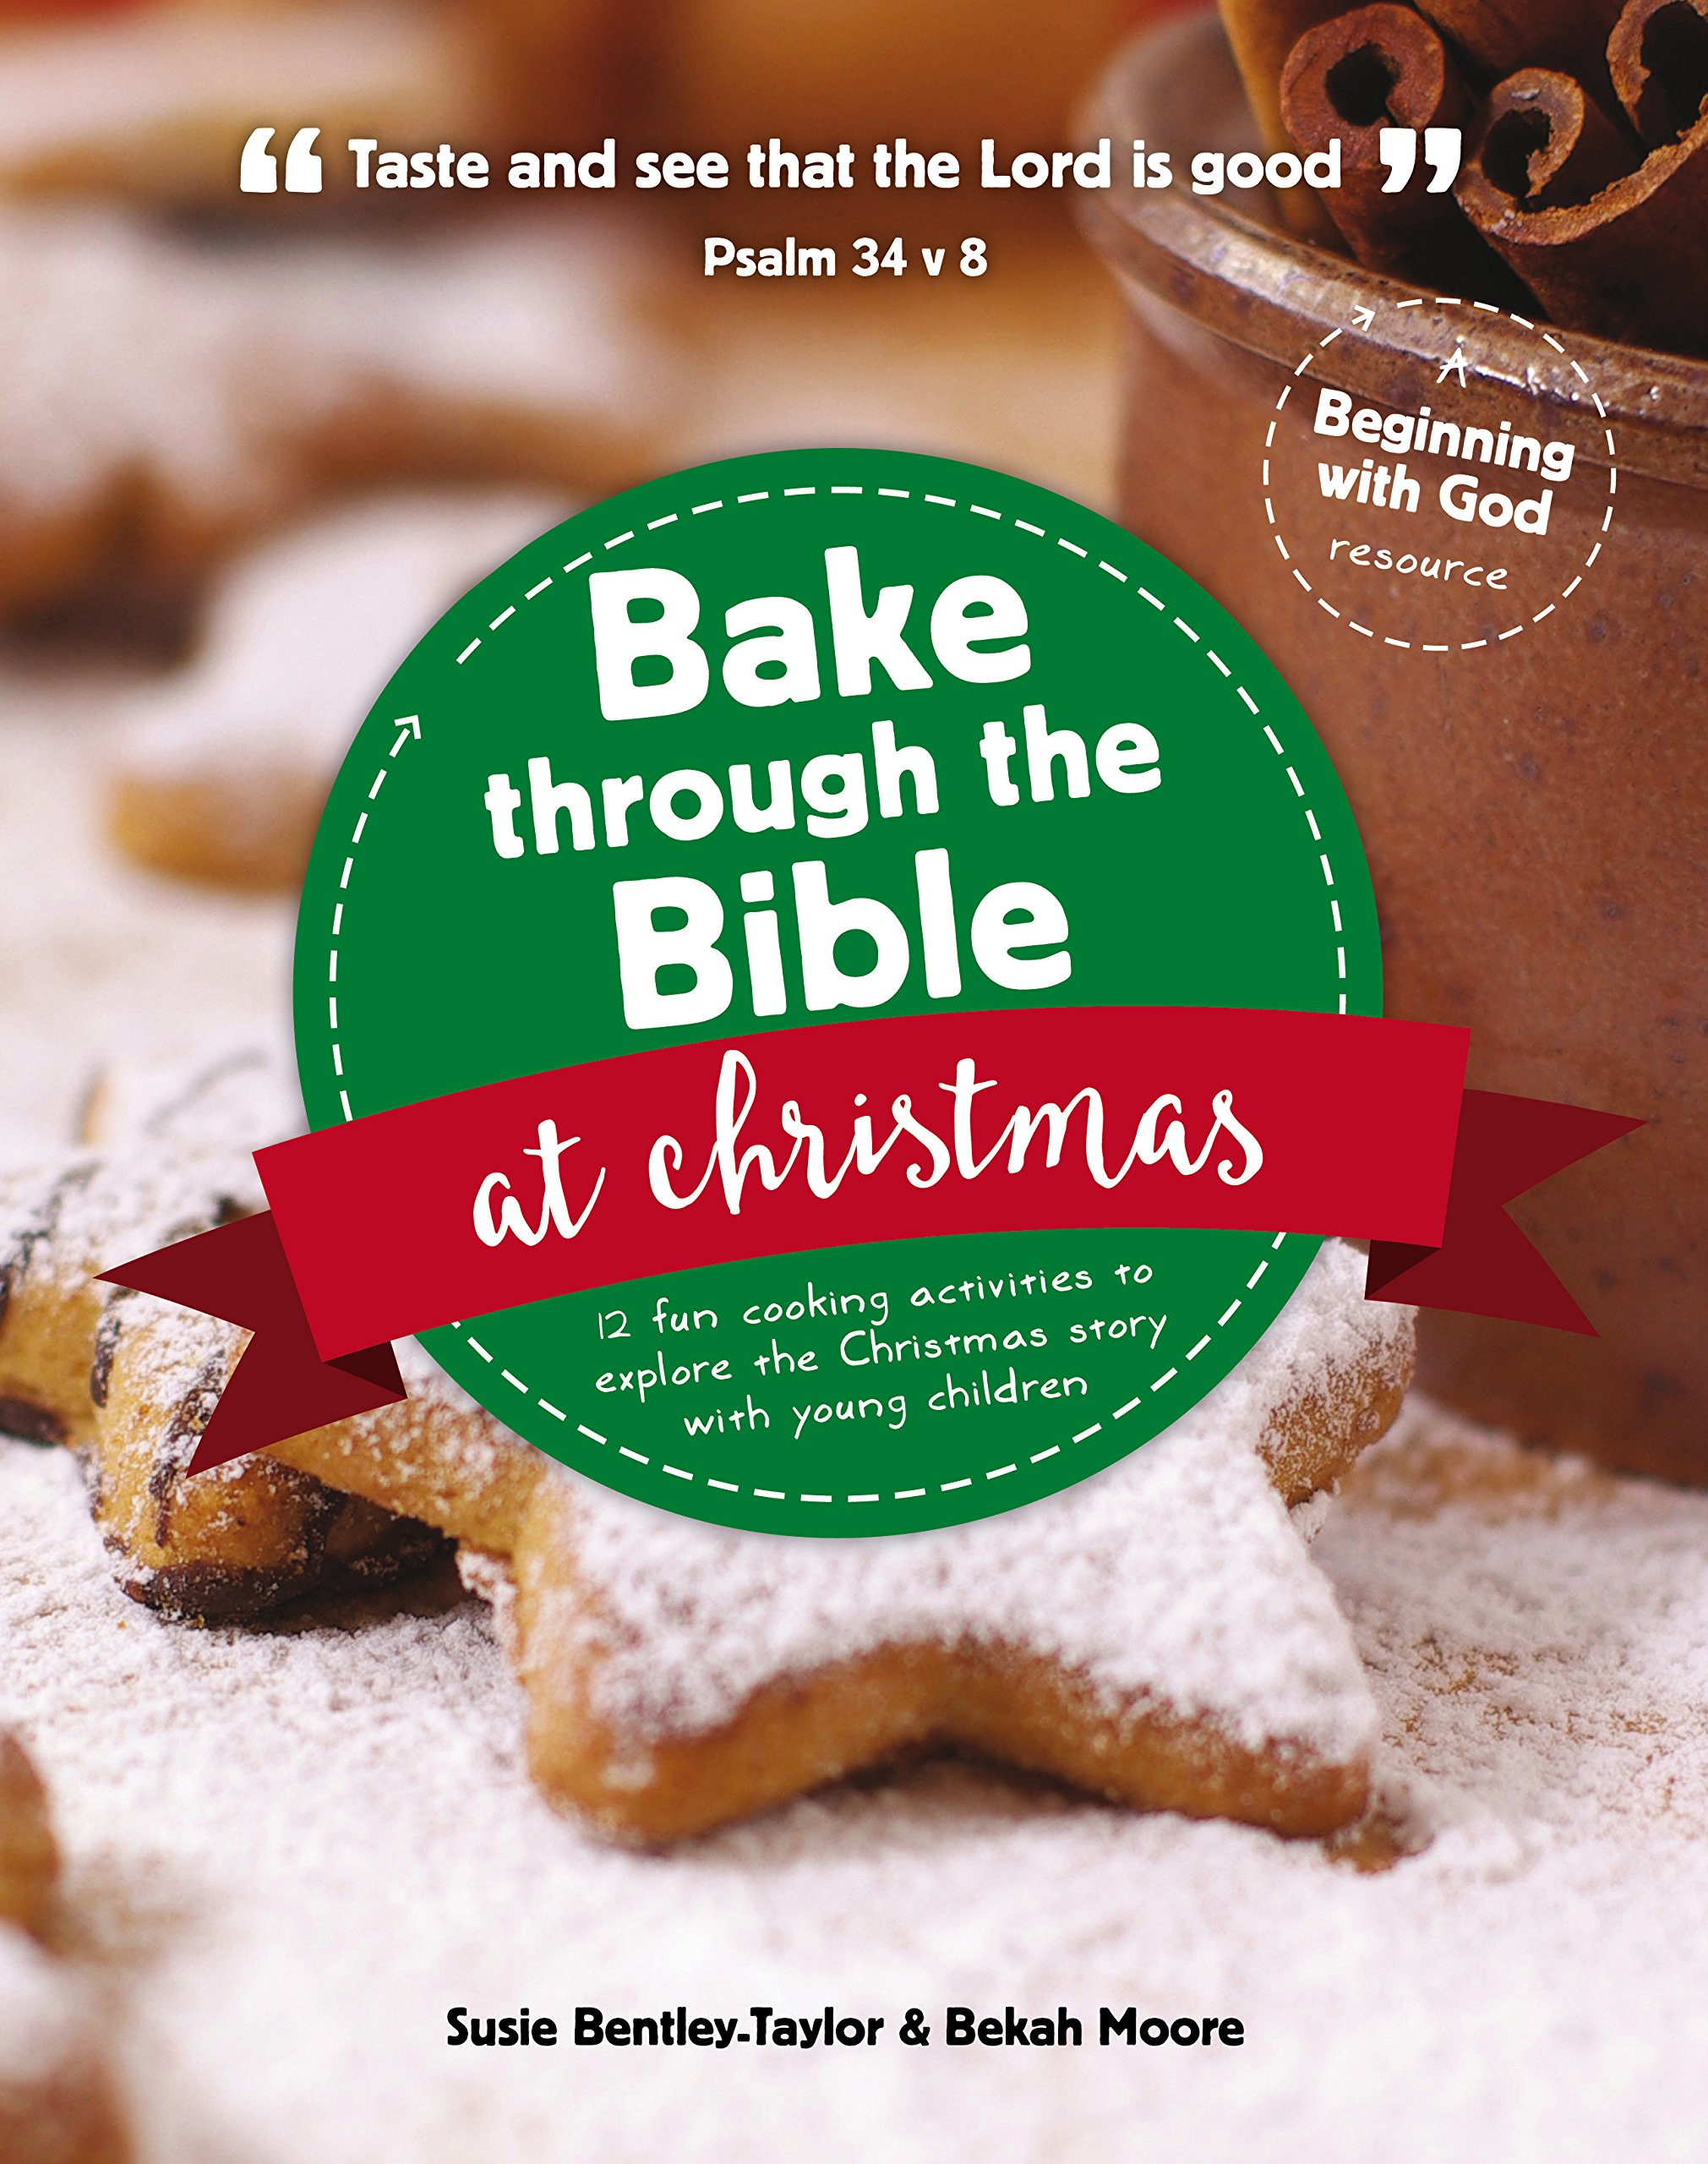 Bake Through the Bible at Christmas Paperback – September 30, 2015 Susie Bentley-Taylor Bekah Moore The Good Book Company 191030798X